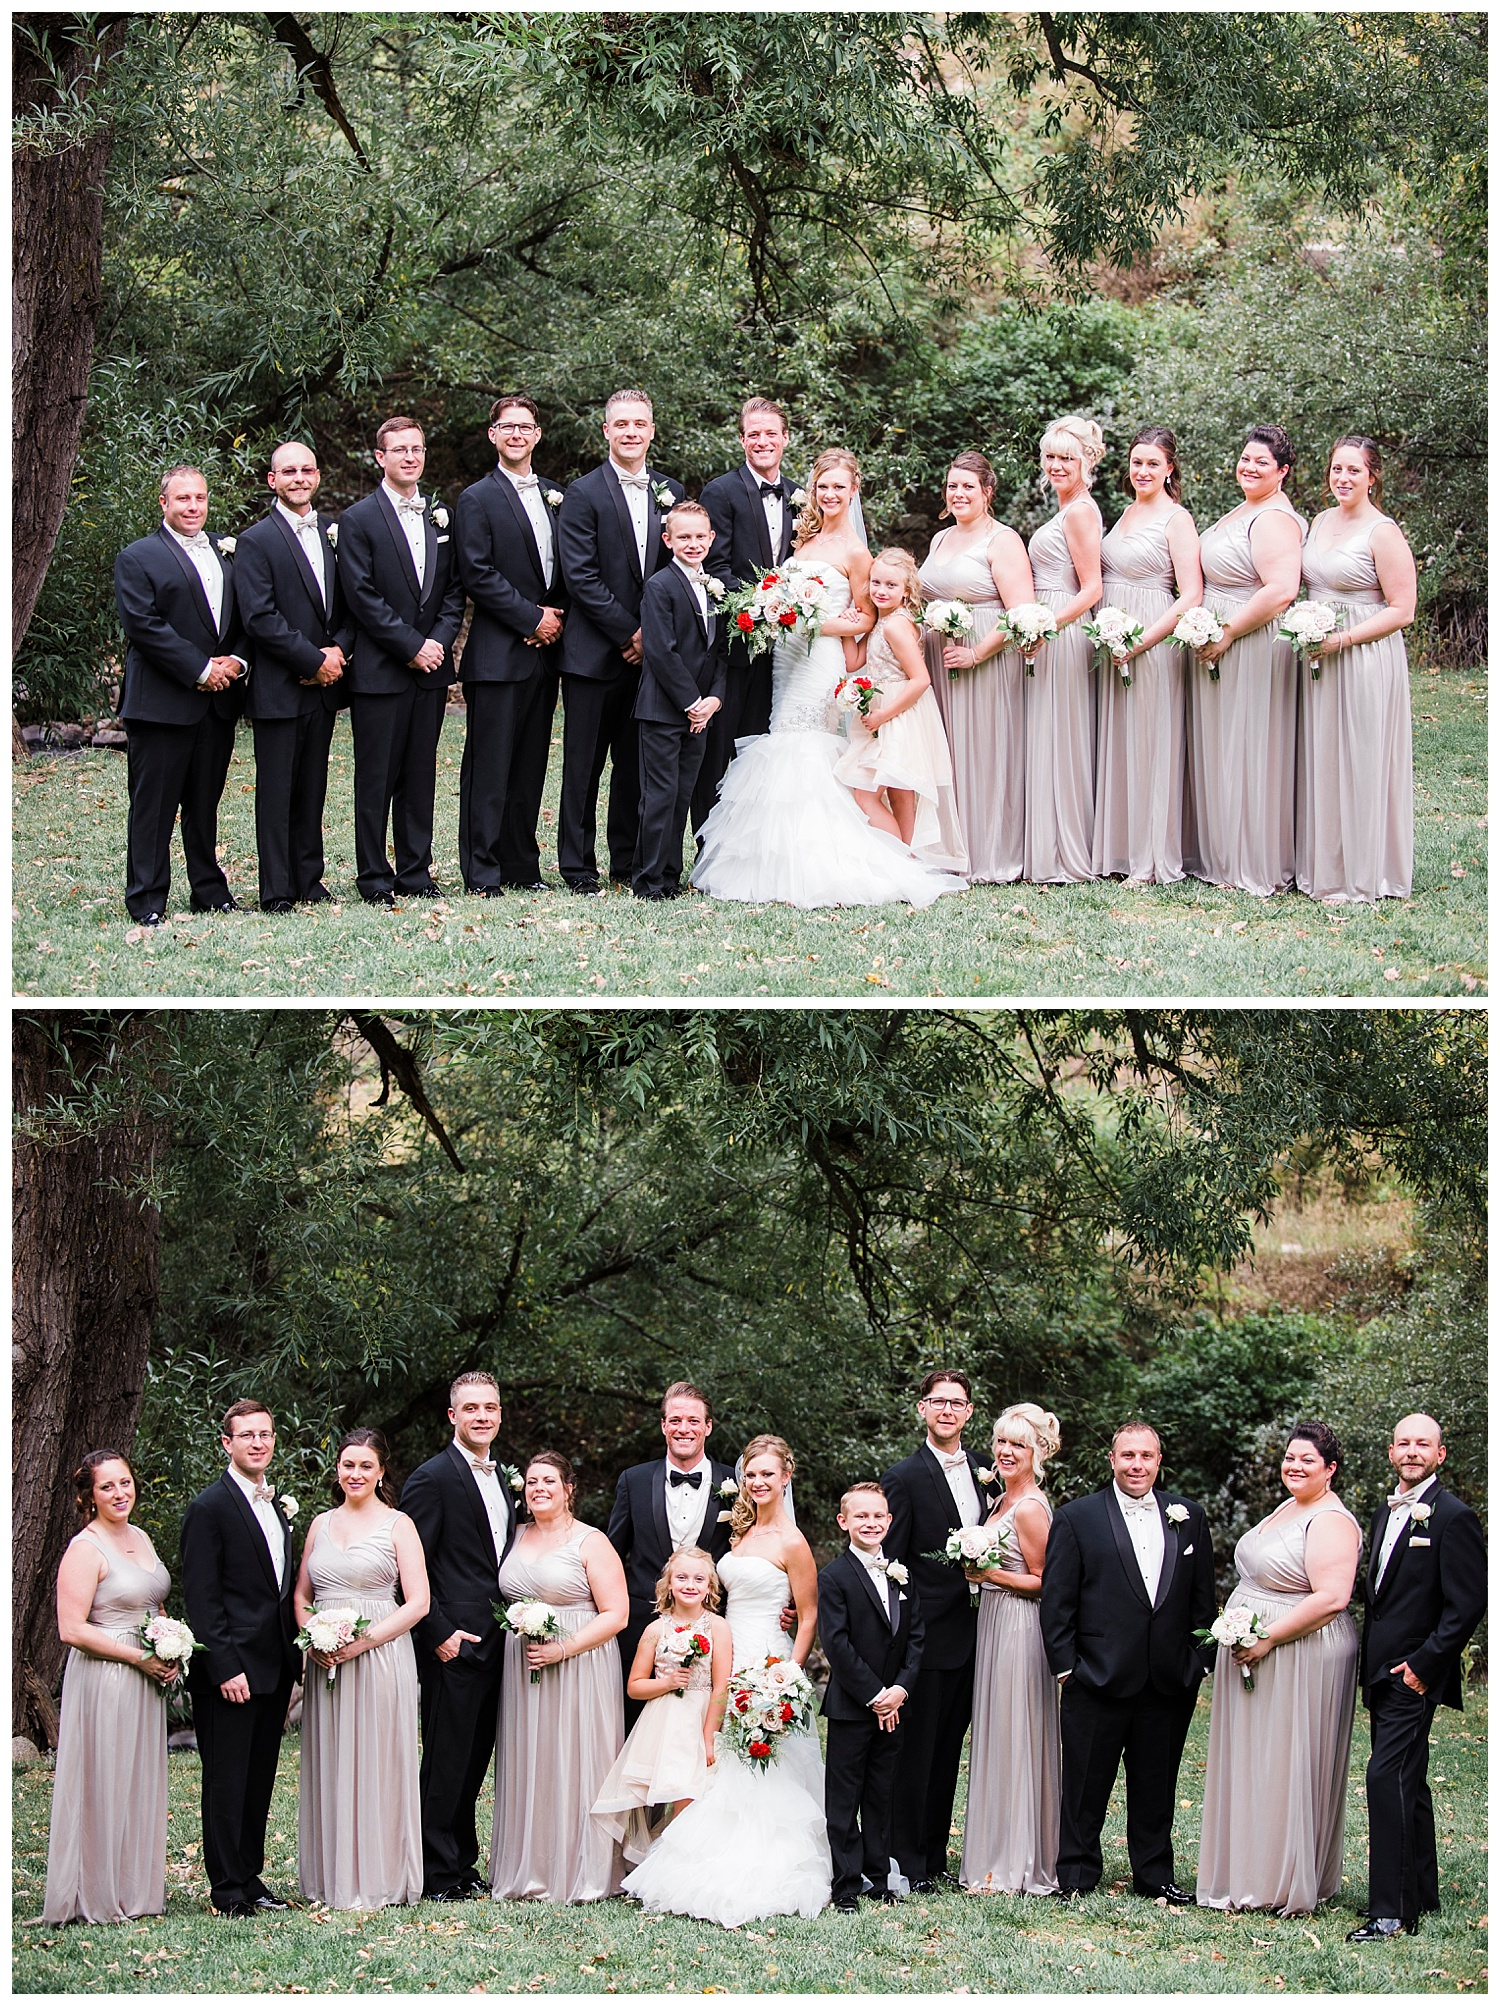 Wedgewood_Boulder_Creek_Wedding_Venue_Colorado_Photographer_Apollo_Fields_022.jpg